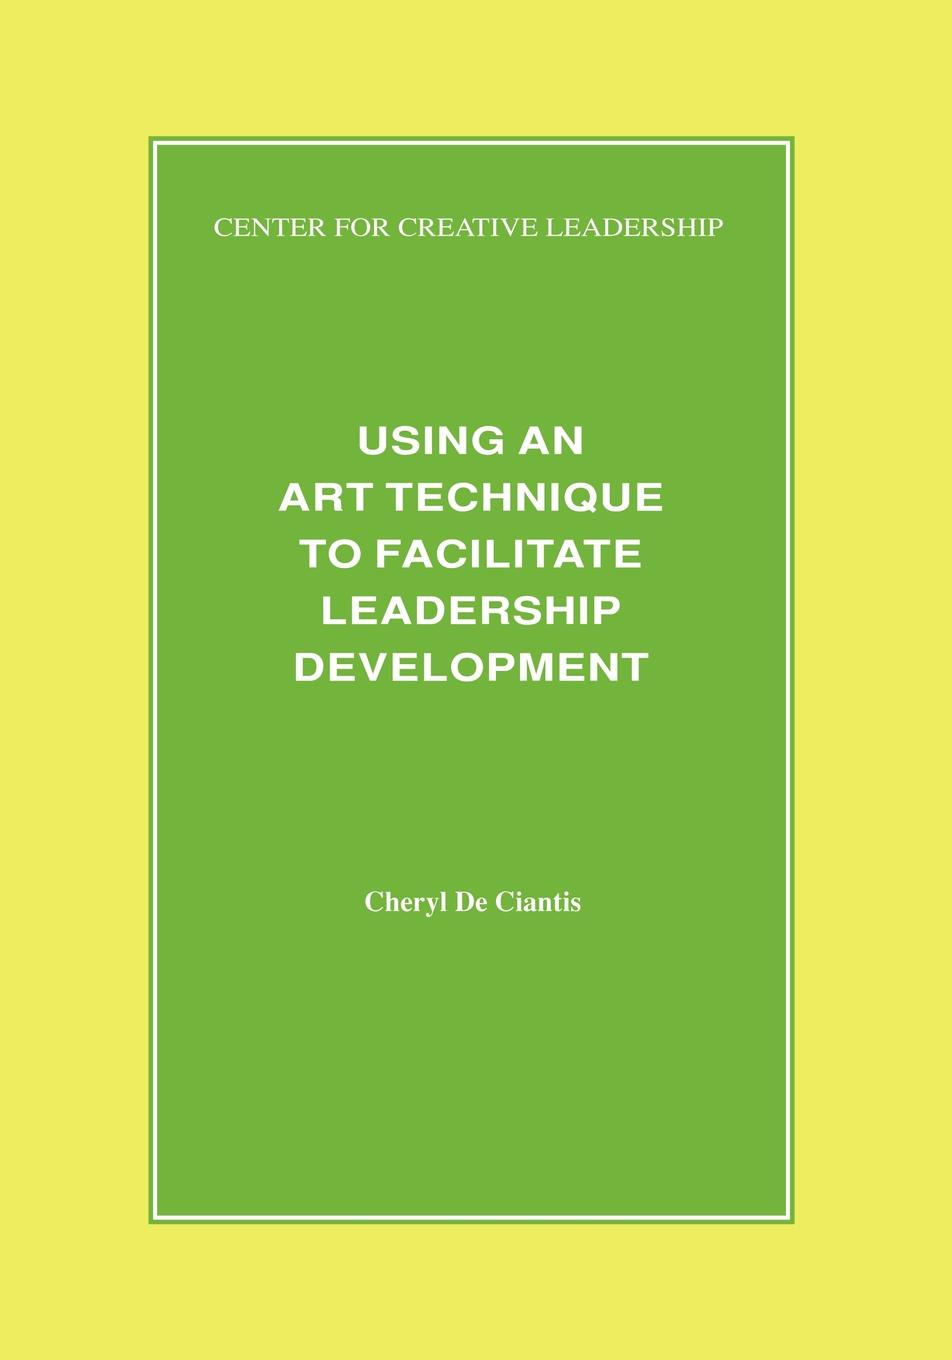 Using an Art Technique to Facilitate Leadership Development As a part of the effort to find new ways to promote the development...